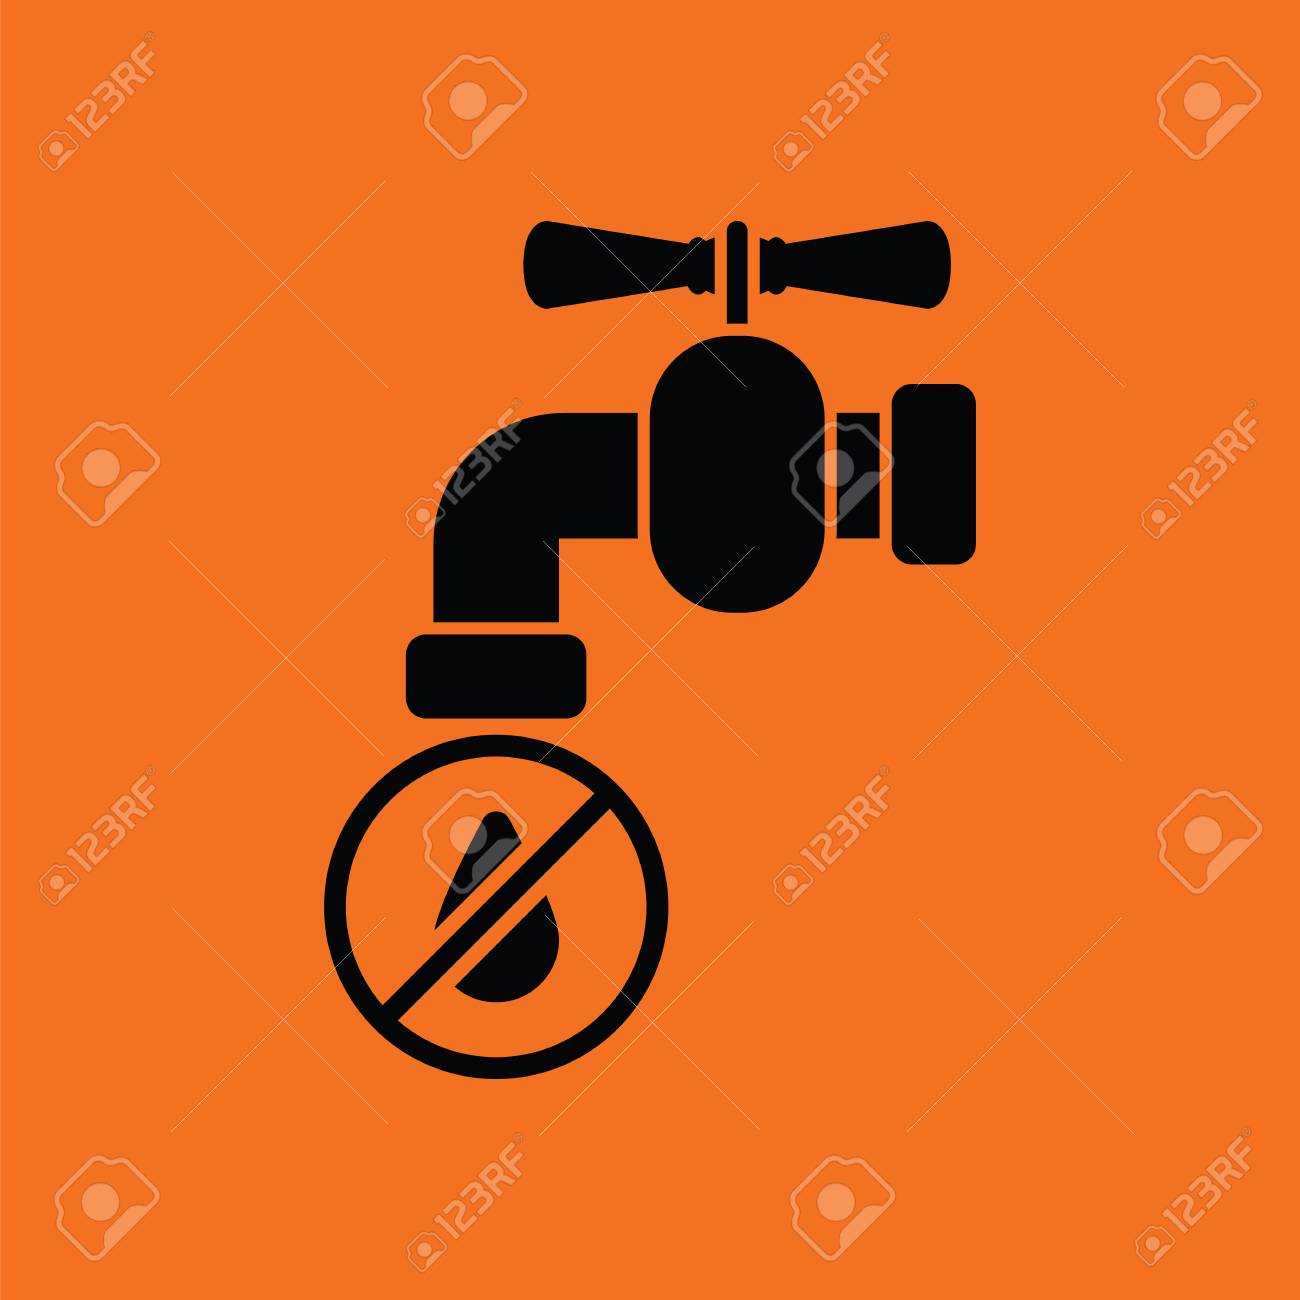 Water Faucet With Dropping Water Icon. Orange Background With ...